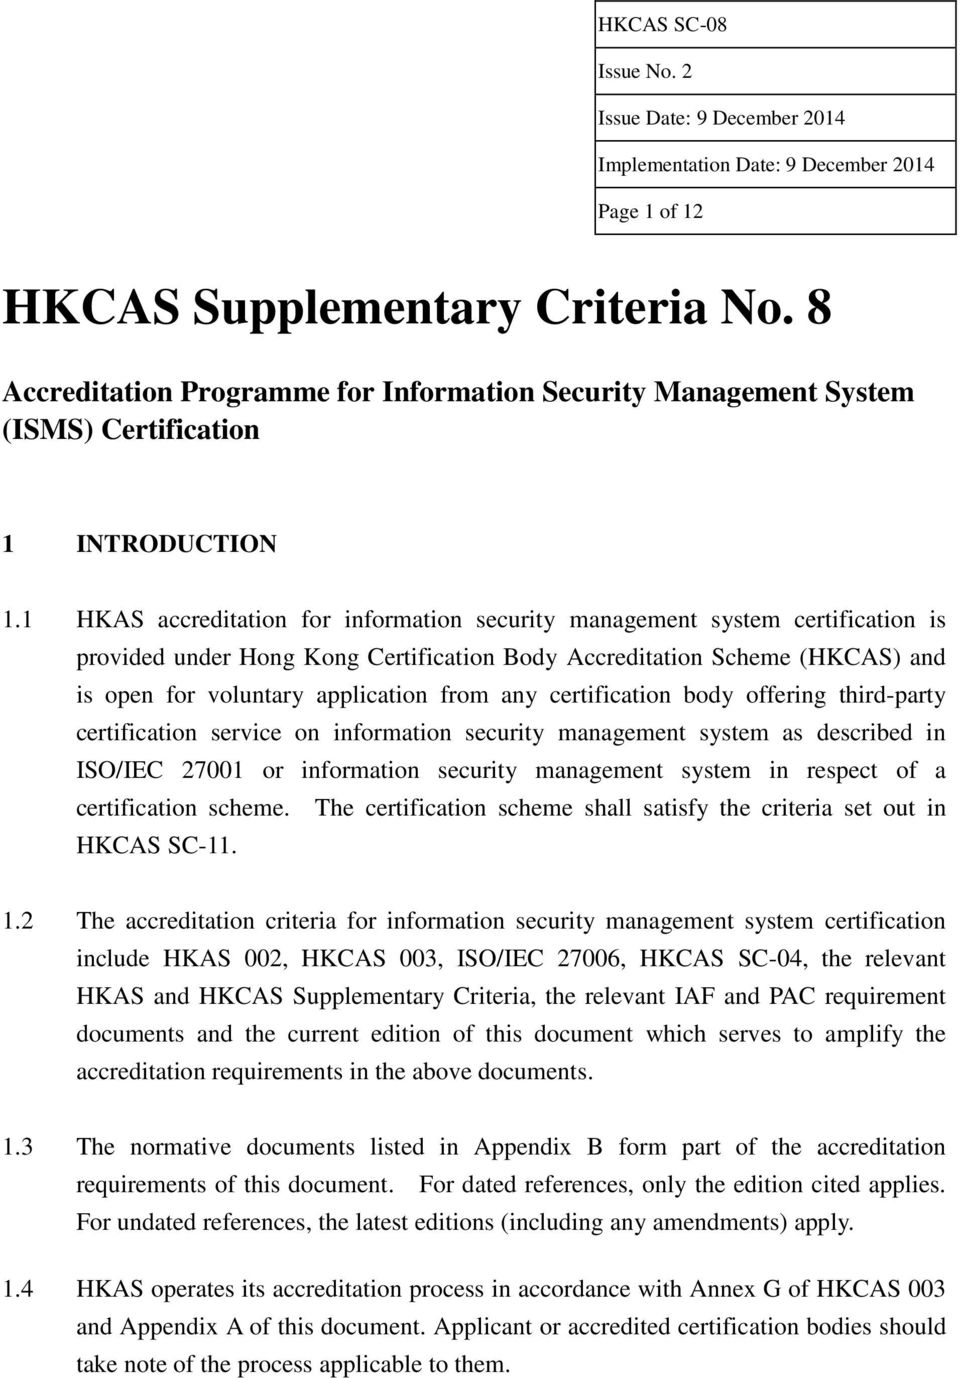 any certification body offering third-party certification service on information security management system as described in ISO/IEC 27001 or information security management system in respect of a